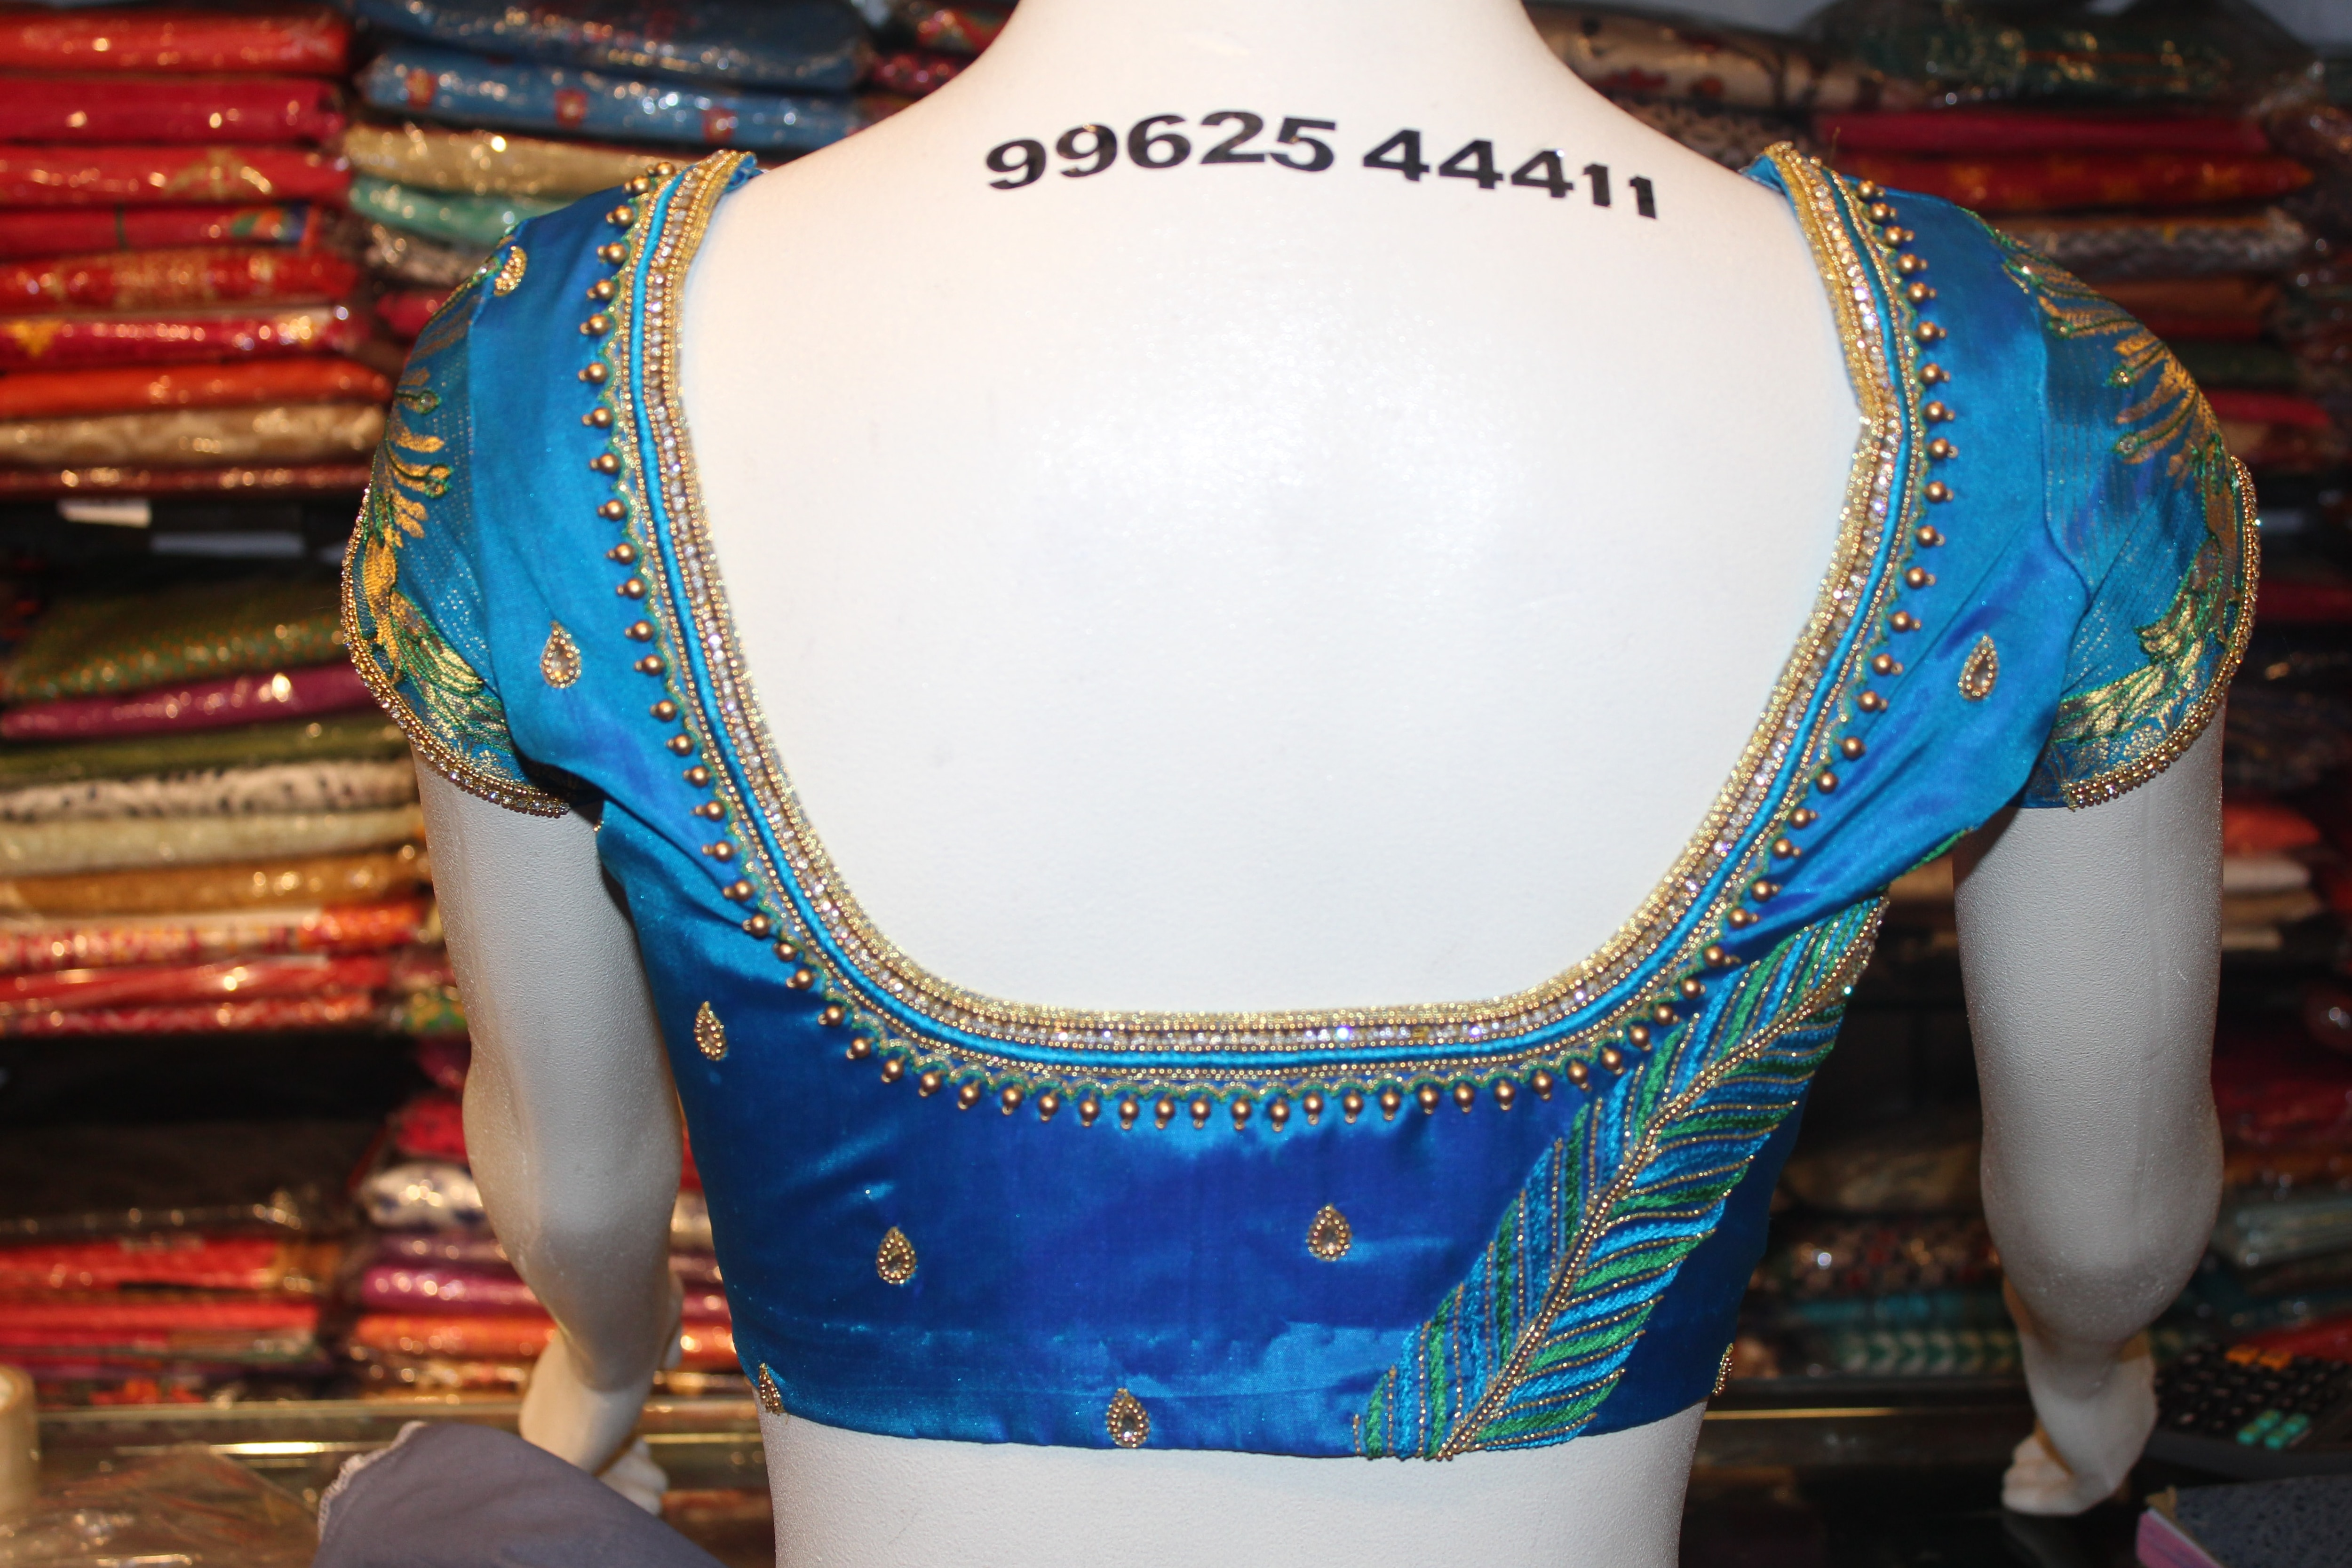 Blue Thread And zari Work Embroidery Wedding Blouse At Fabloon Fashion Boutique And Designer Embroidery Tailors   blouse Tailors  embroidered blouse silk blouse Wedding Blouse Stitching